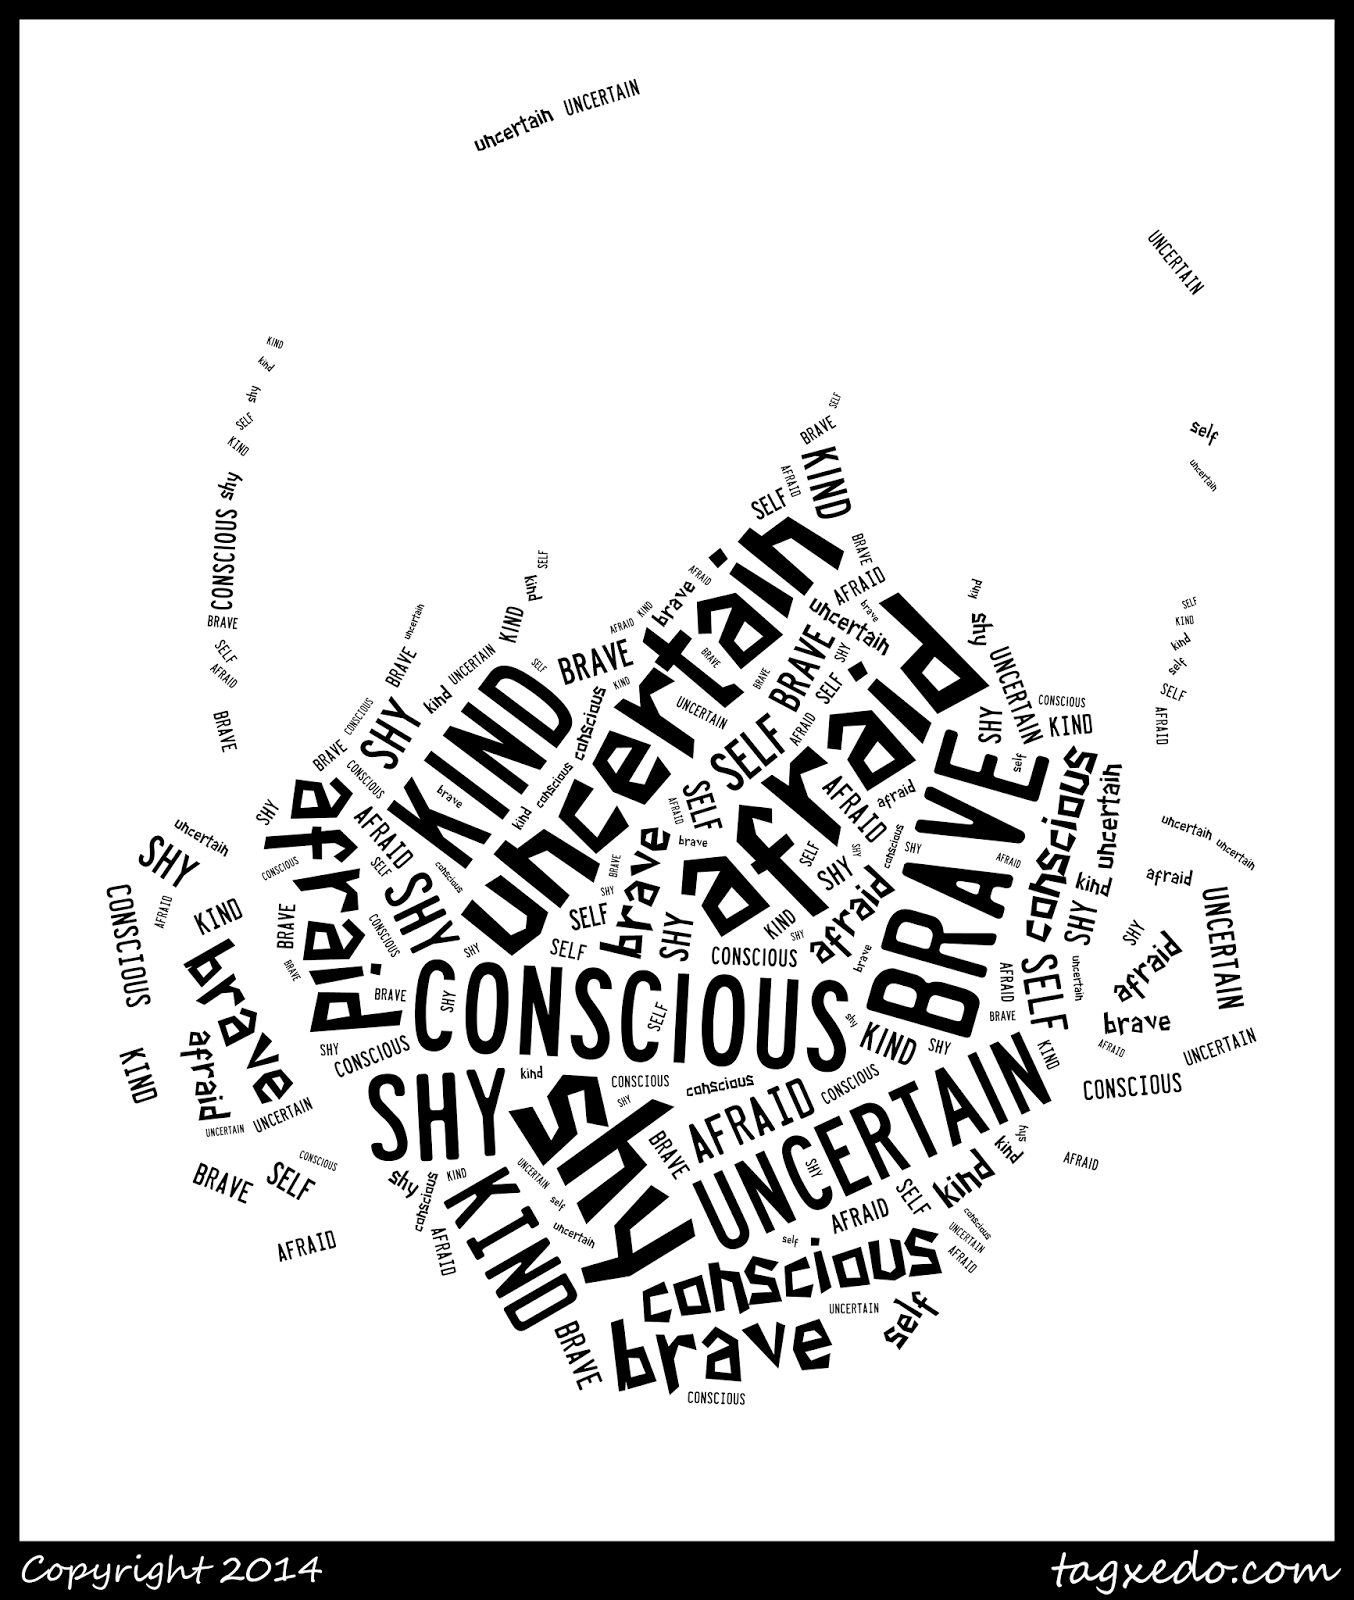 Wonder Character Trait Image using Tagxedo @ http://teachingisagift.blogspot.ca